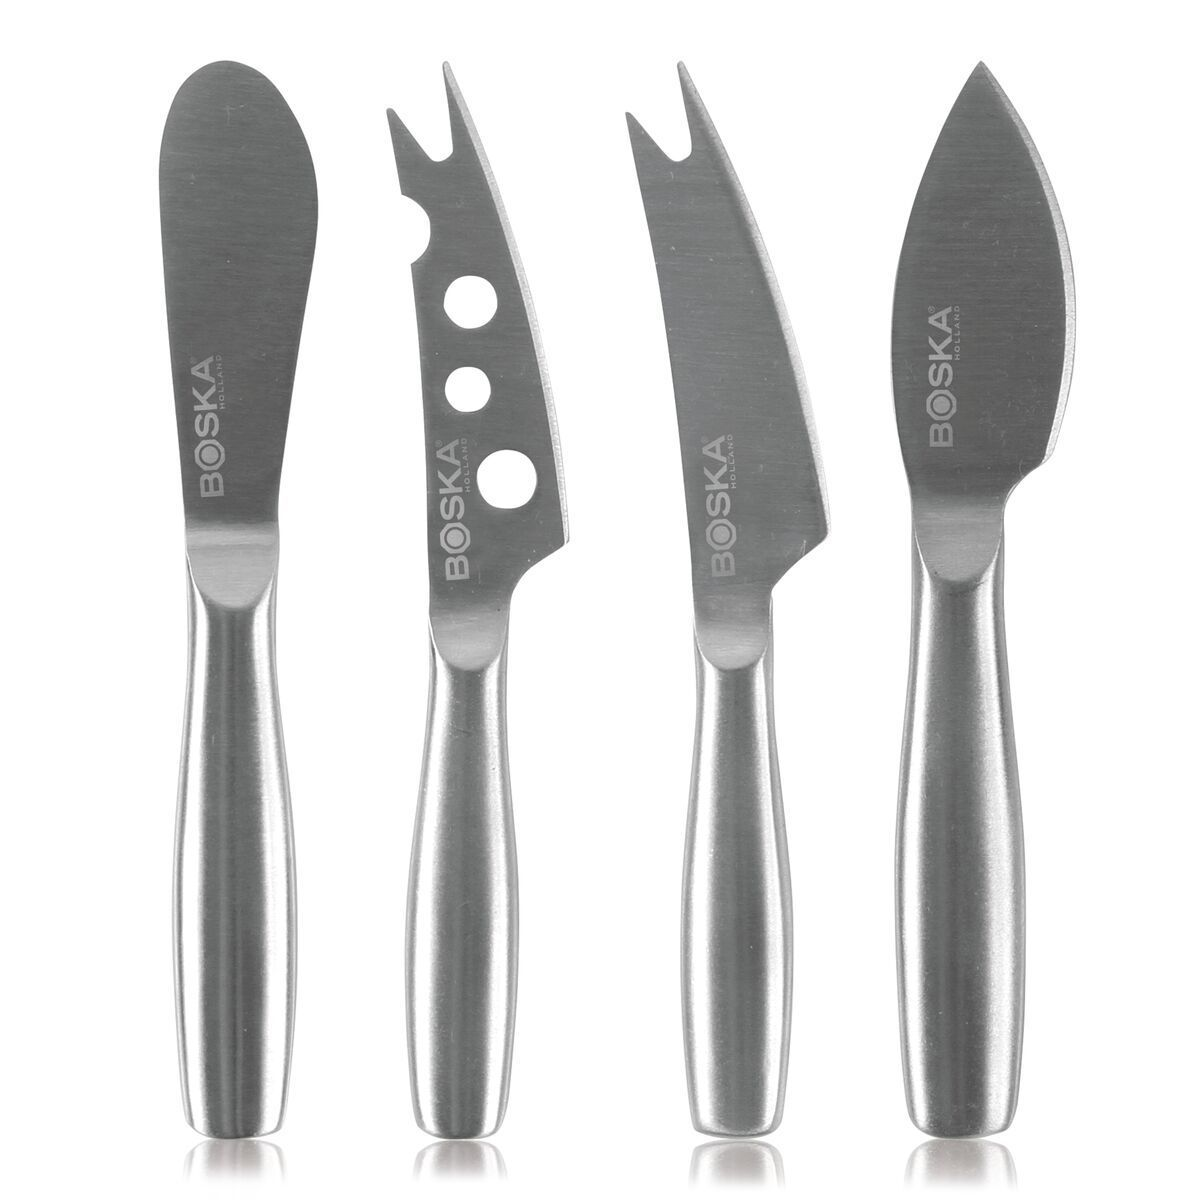 Are you crazy about cheese? Then you need the Cheese Knife Set Mini Copenhagen! You can tackle hard, soft, and spreadable cheeses with this lightweight set. It consists of four stylish stainless steel knives. You'll be able to plate up something for everyone on your cheese board with these knives. Dream team Are you craving a soft or semi-hard cheese? The Cheese Knife Cheesy Mini will get the job done. But you can also cut up hard to very hard cheeses. In that case, call on the Hard Cheese Knife